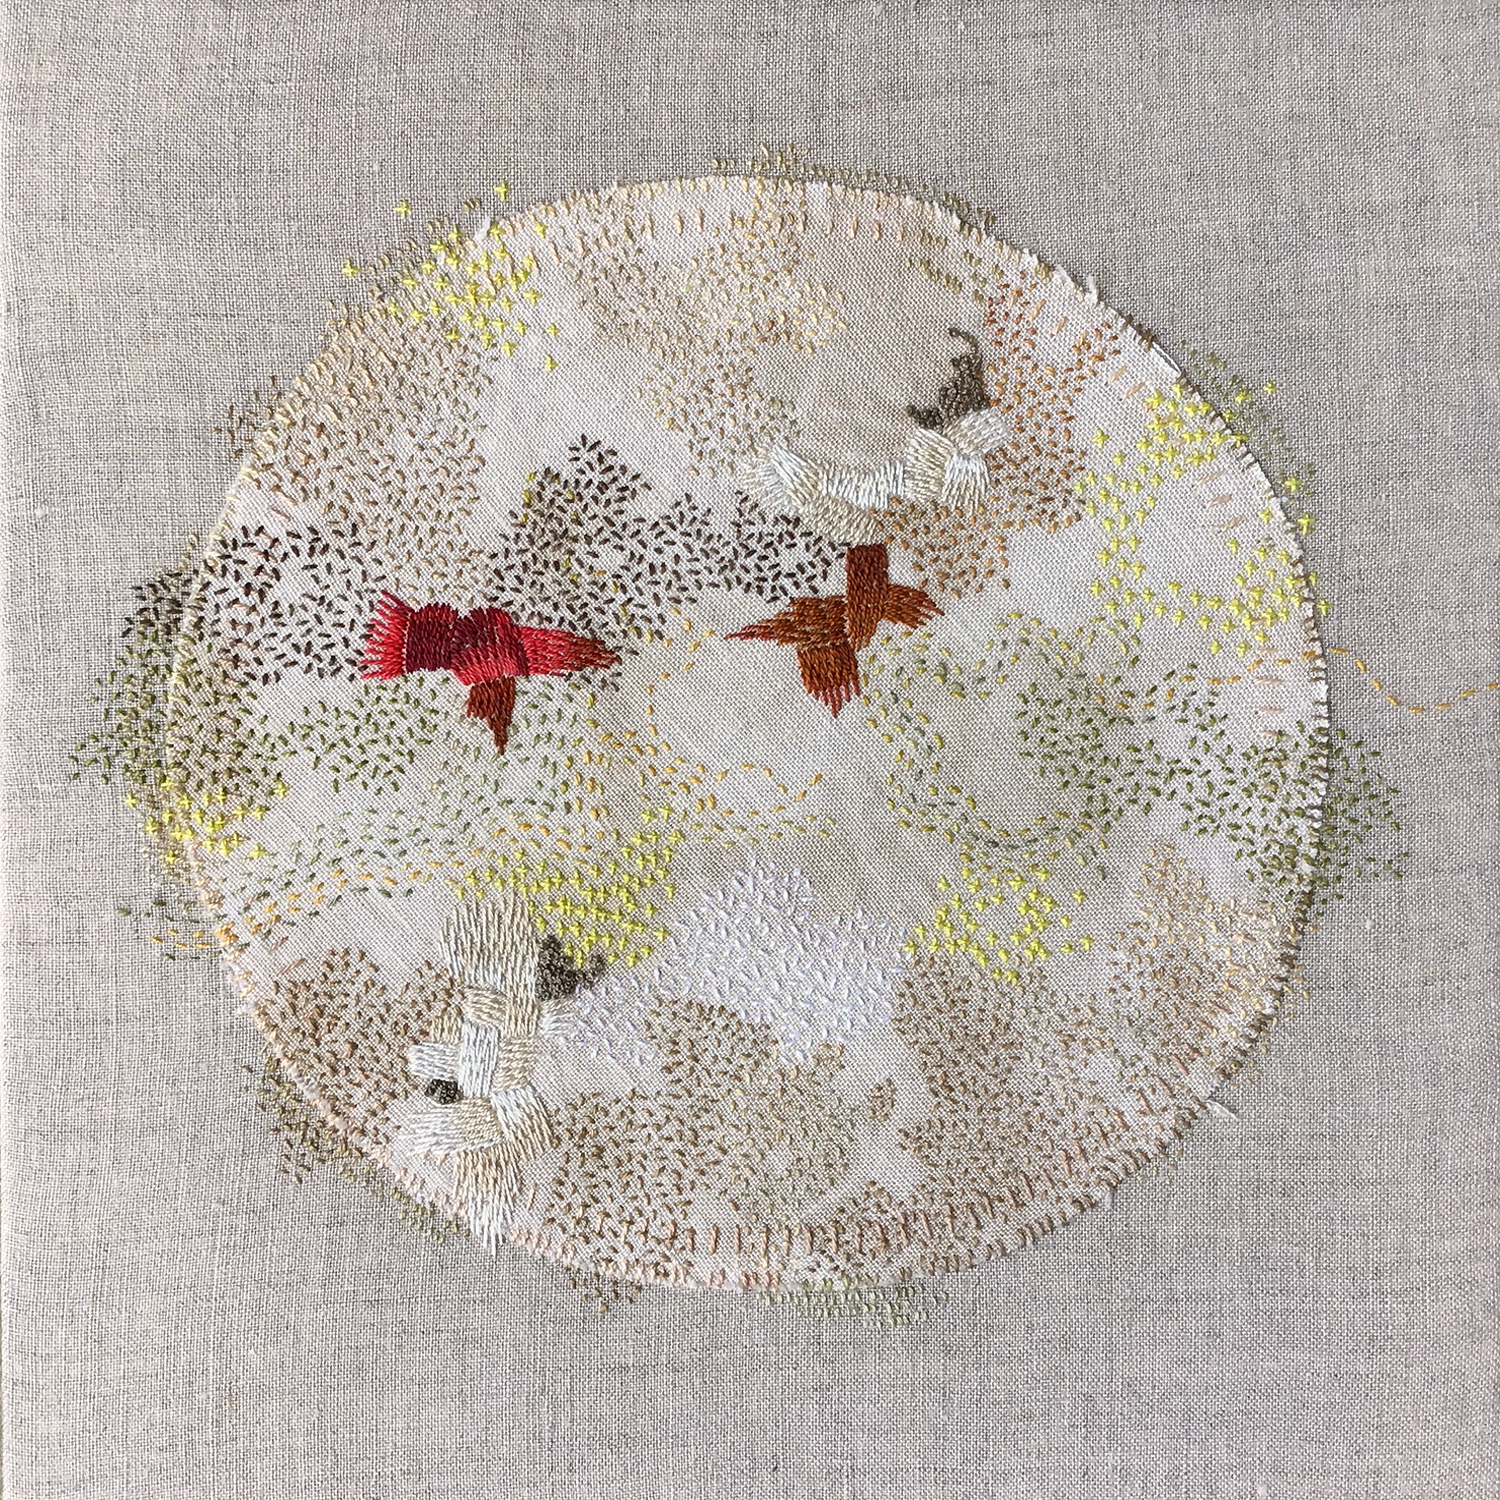 "Bonnie Sennott,  A Year in Thread: March , pearl cotton, walnut-dyed linen, and linen, 12"" x 12"" (2016)"